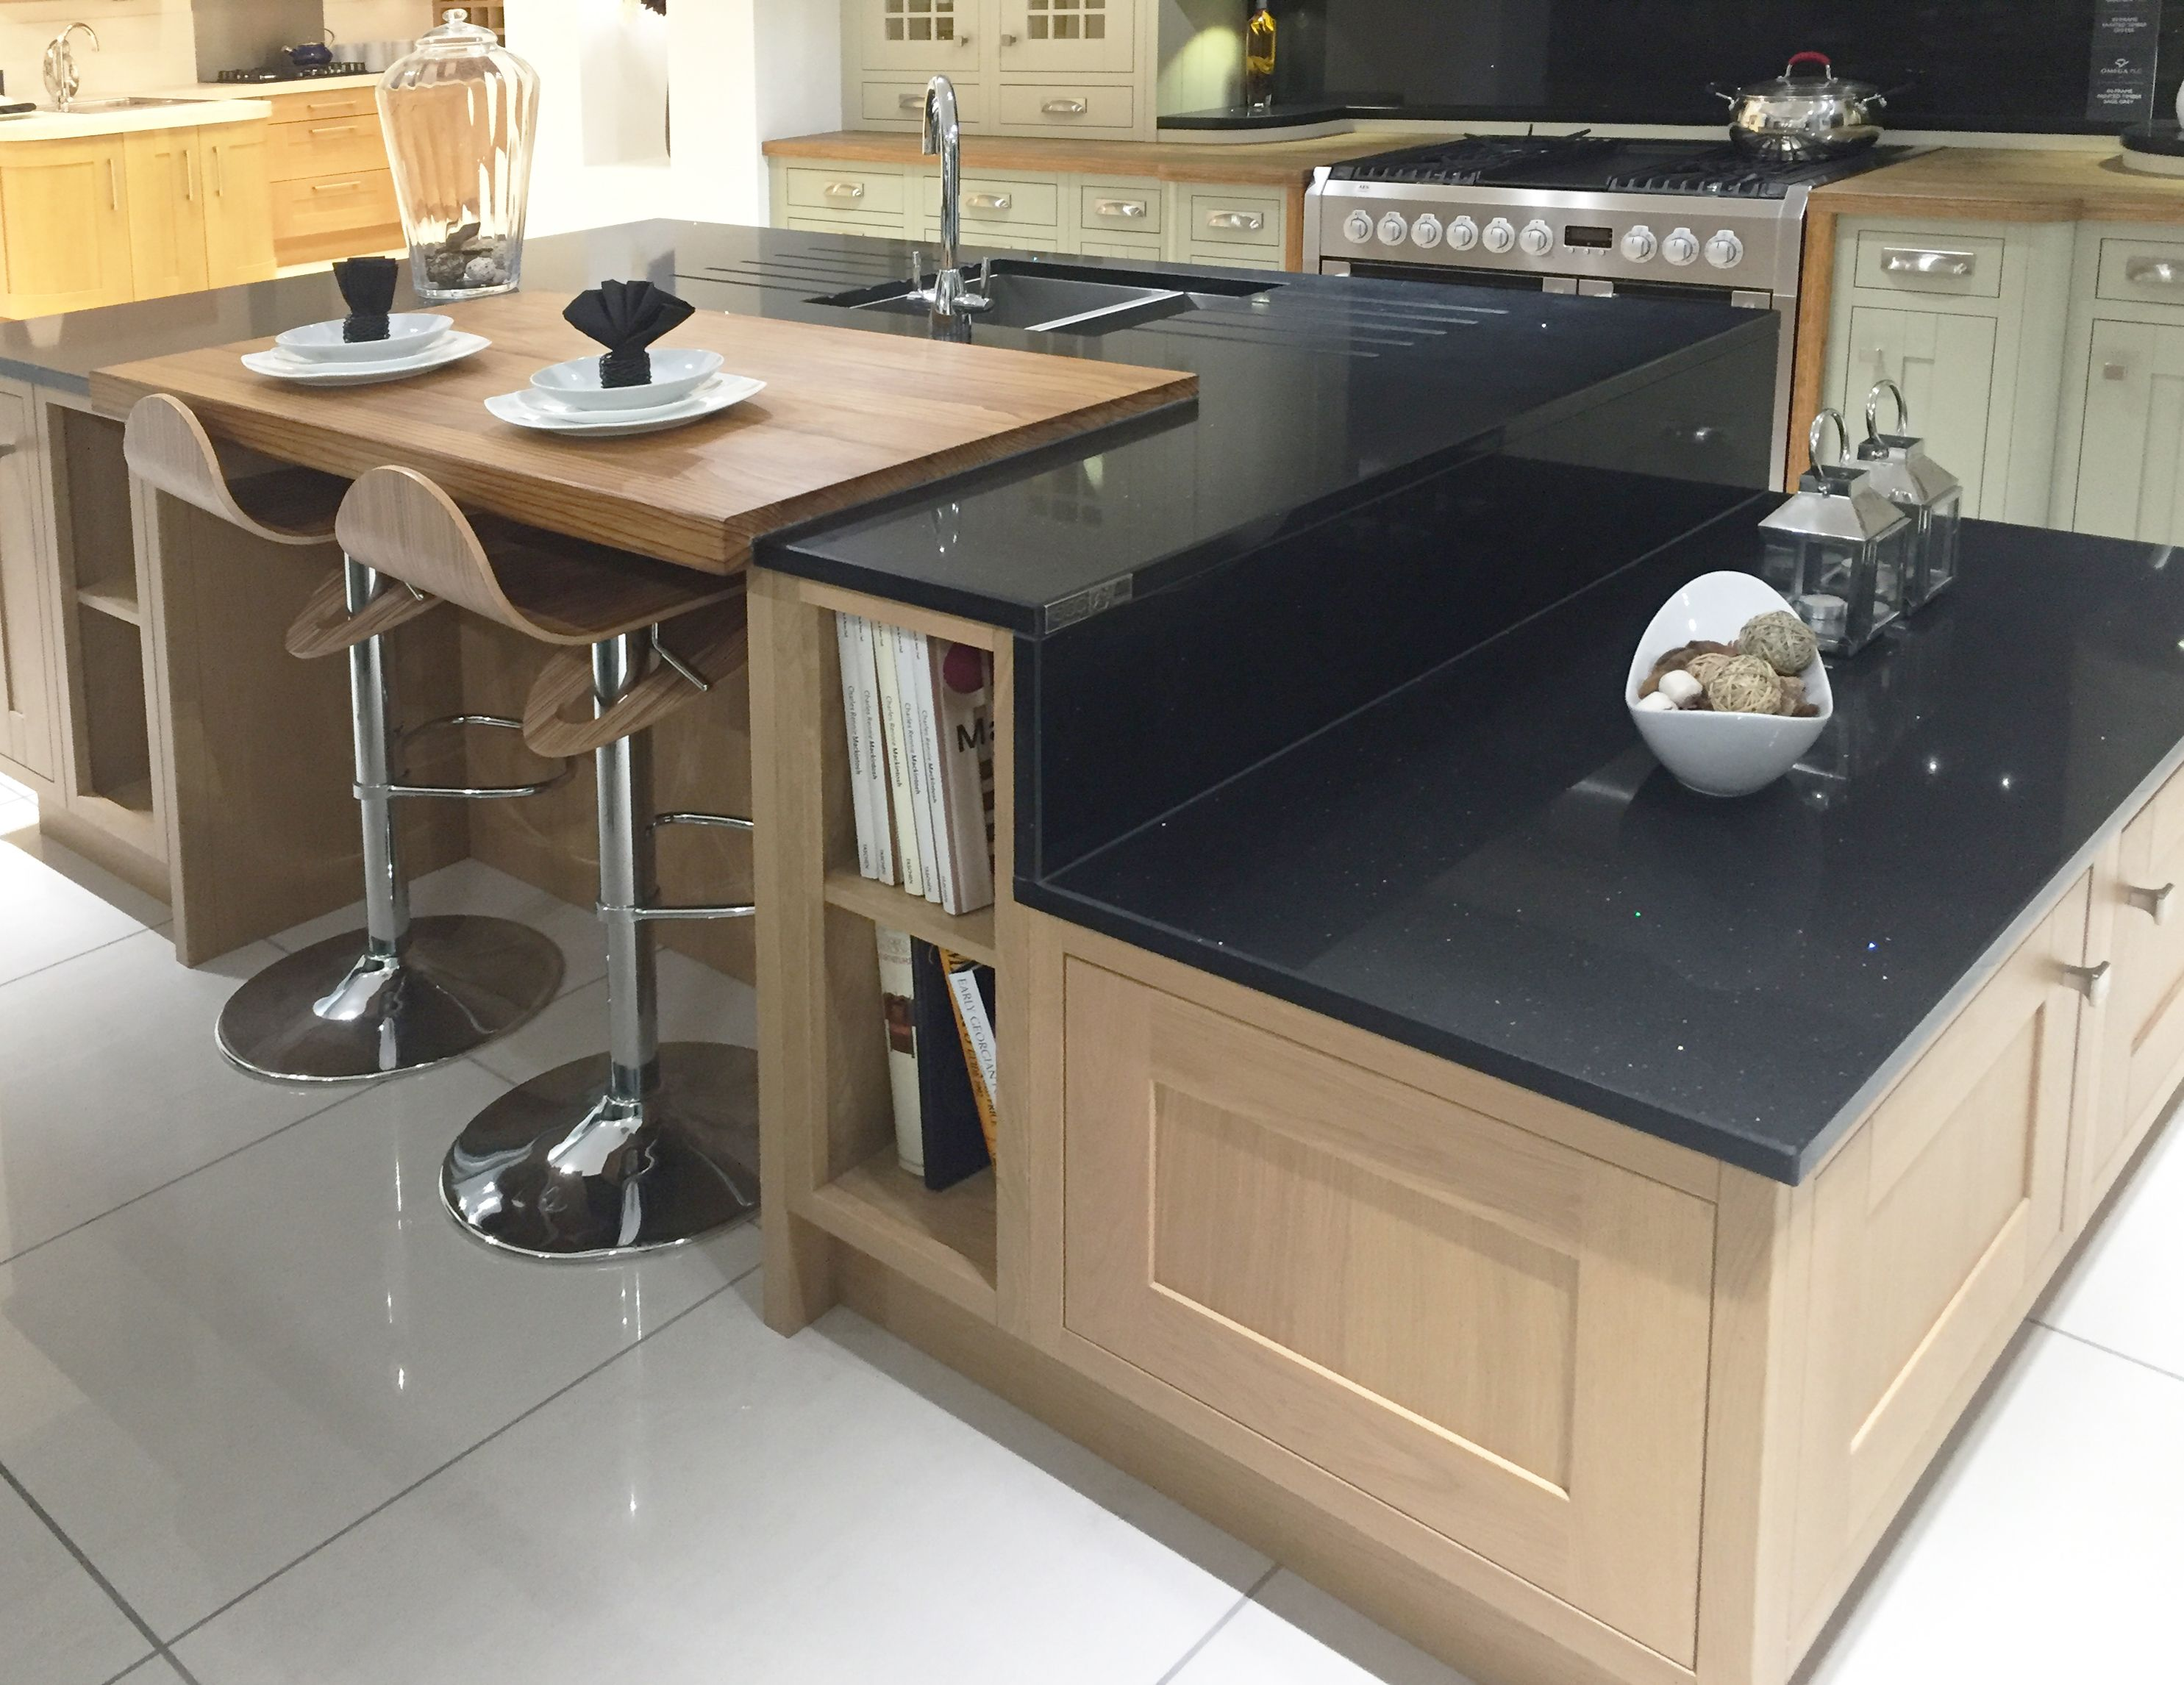 contemporary kitchen island design in lissa oak, with split level